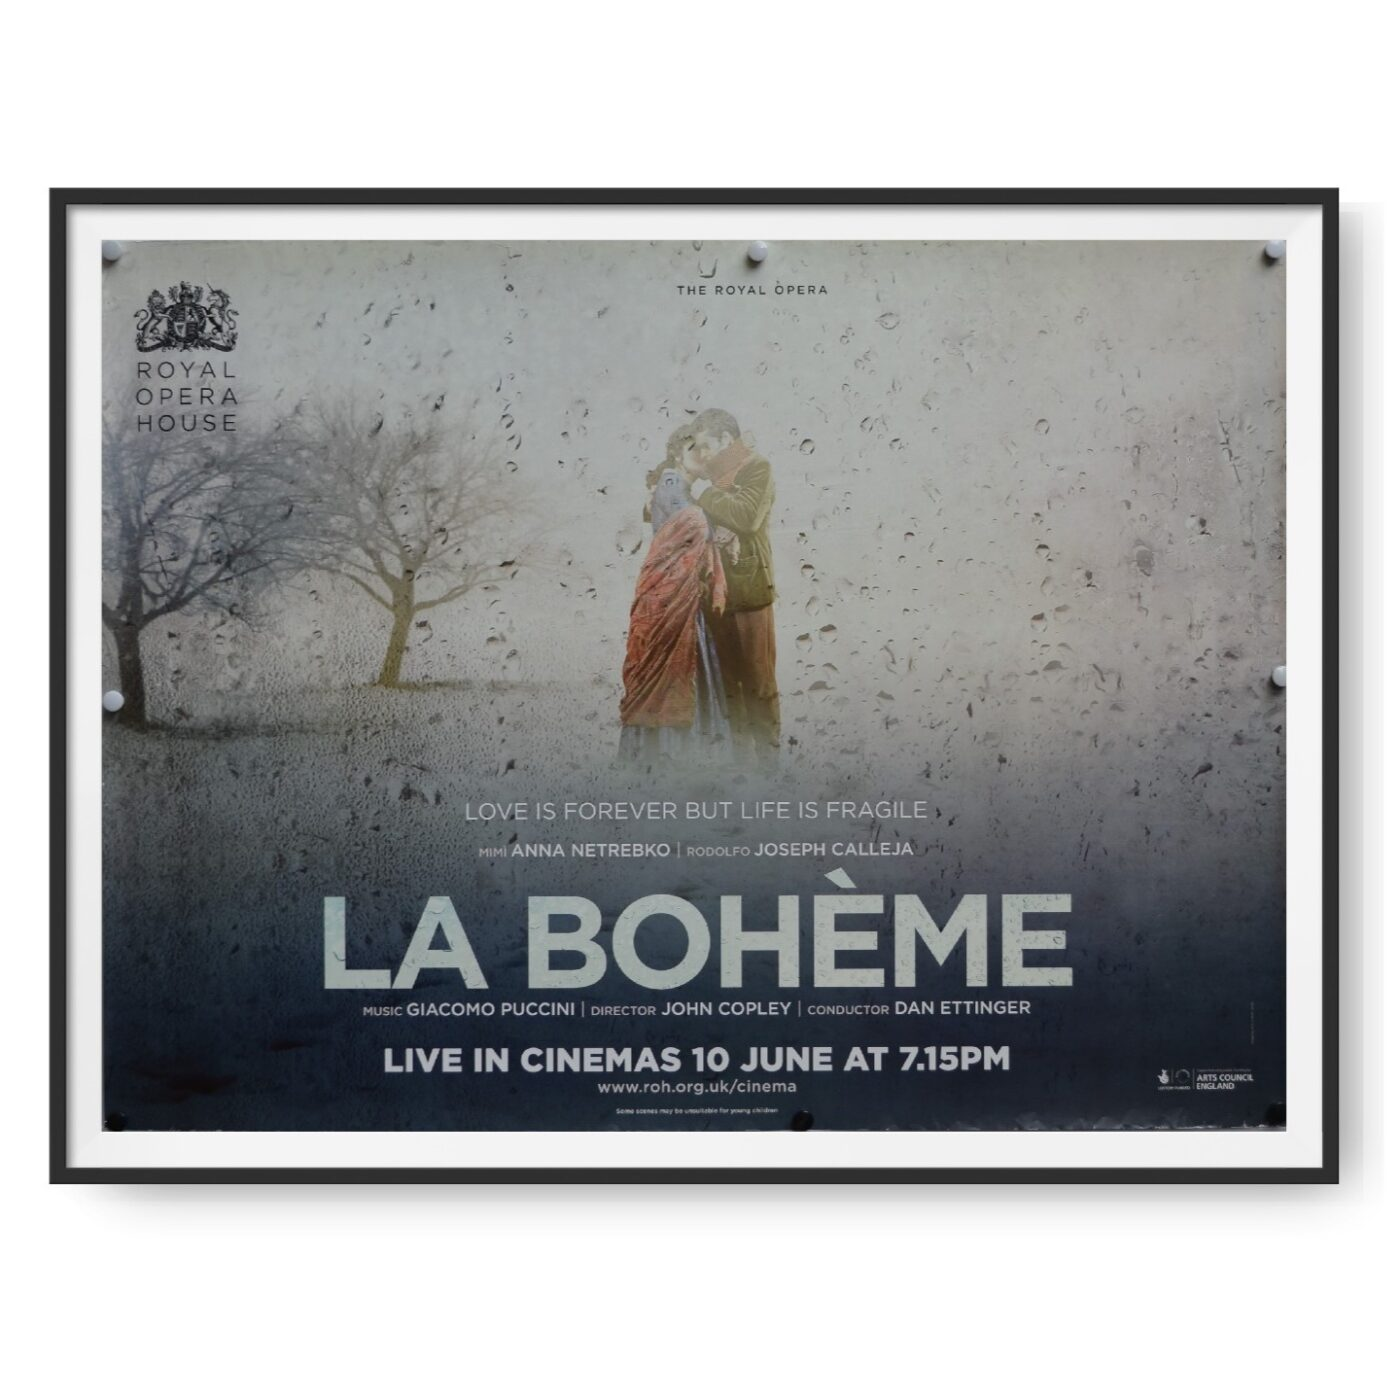 This is an original UK quad poster for a cinema release of the Puccini's Opera La Boheme.